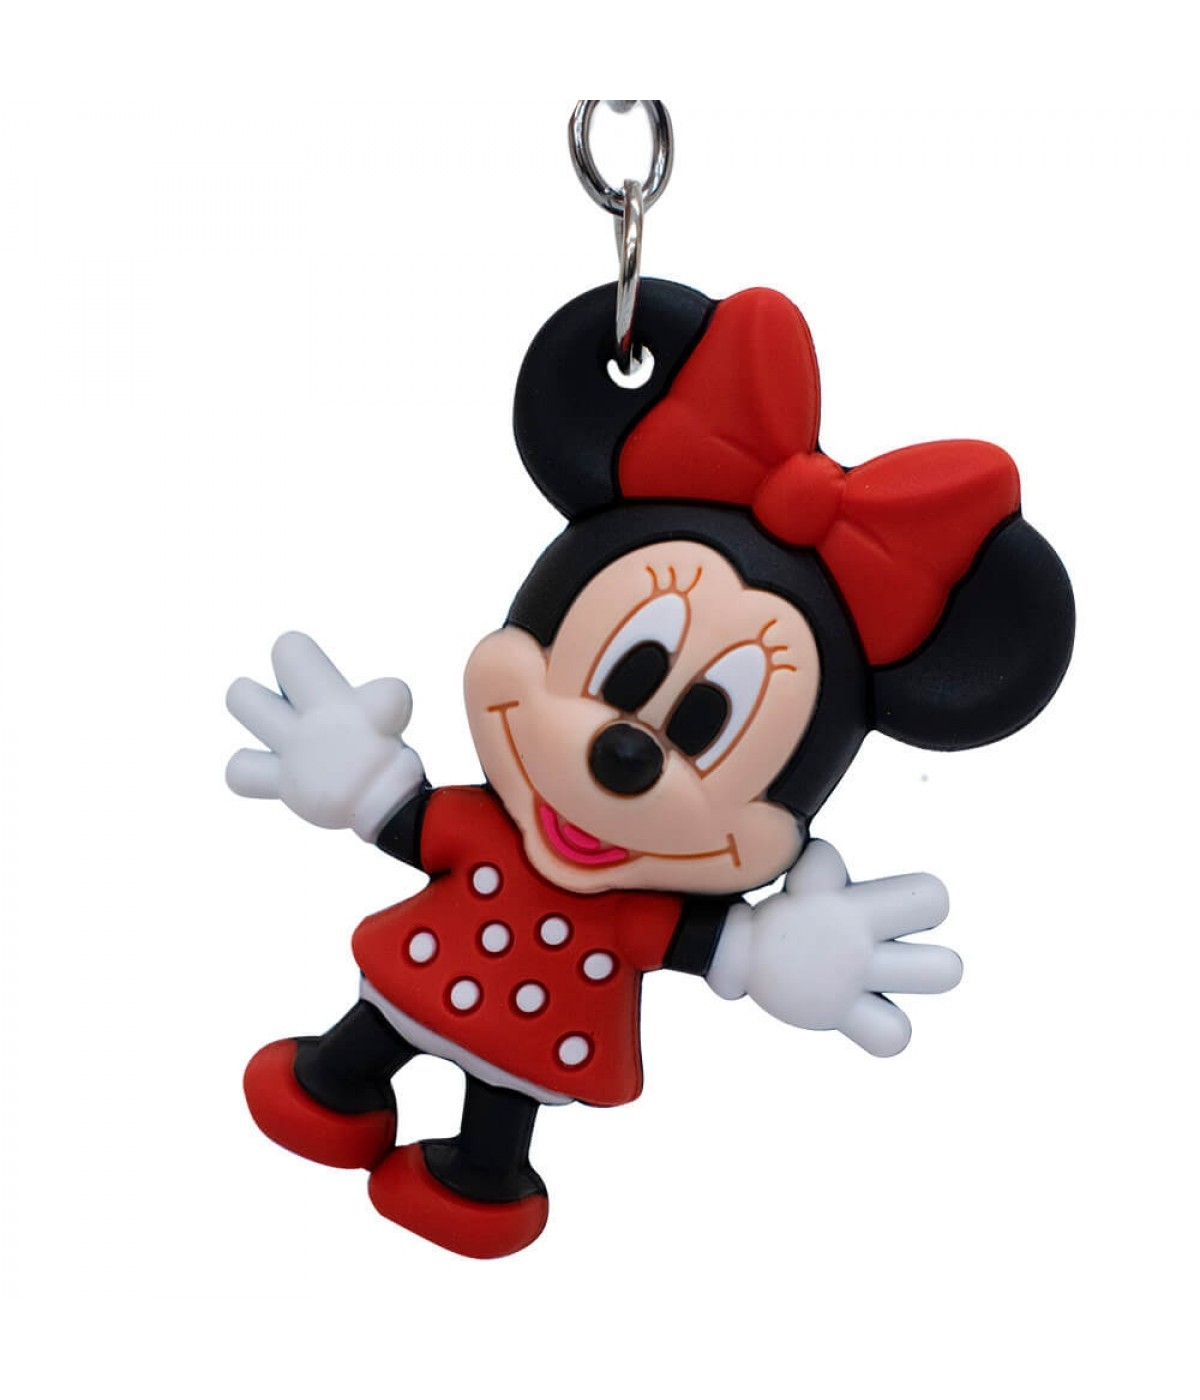 Chaveiro Formato Minnie Mouse 6cm - Disney